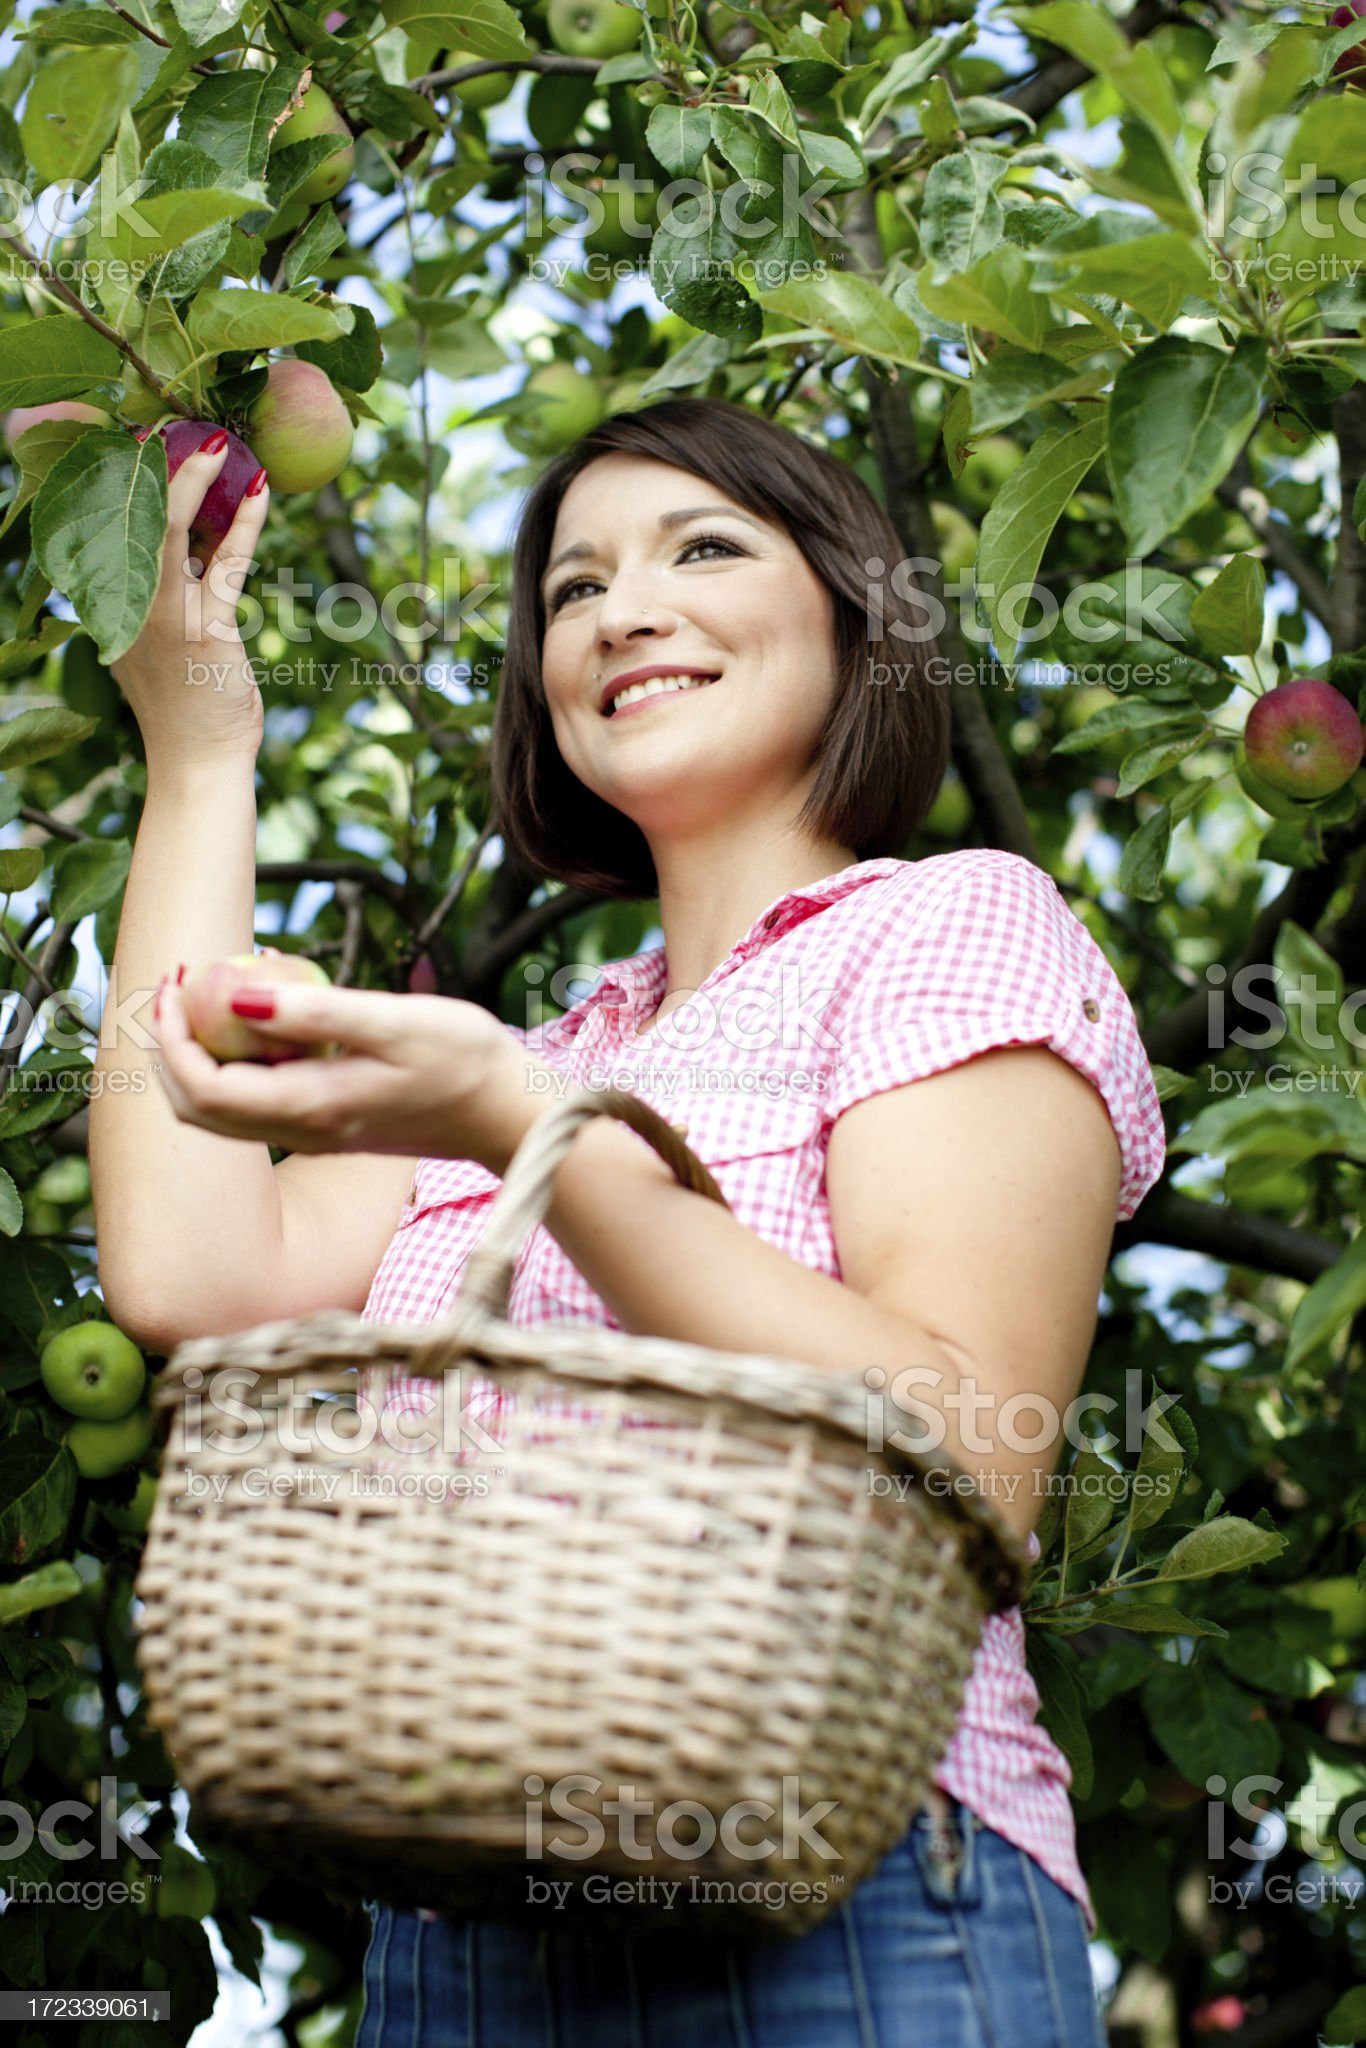 Harvesting apples royalty-free stock photo